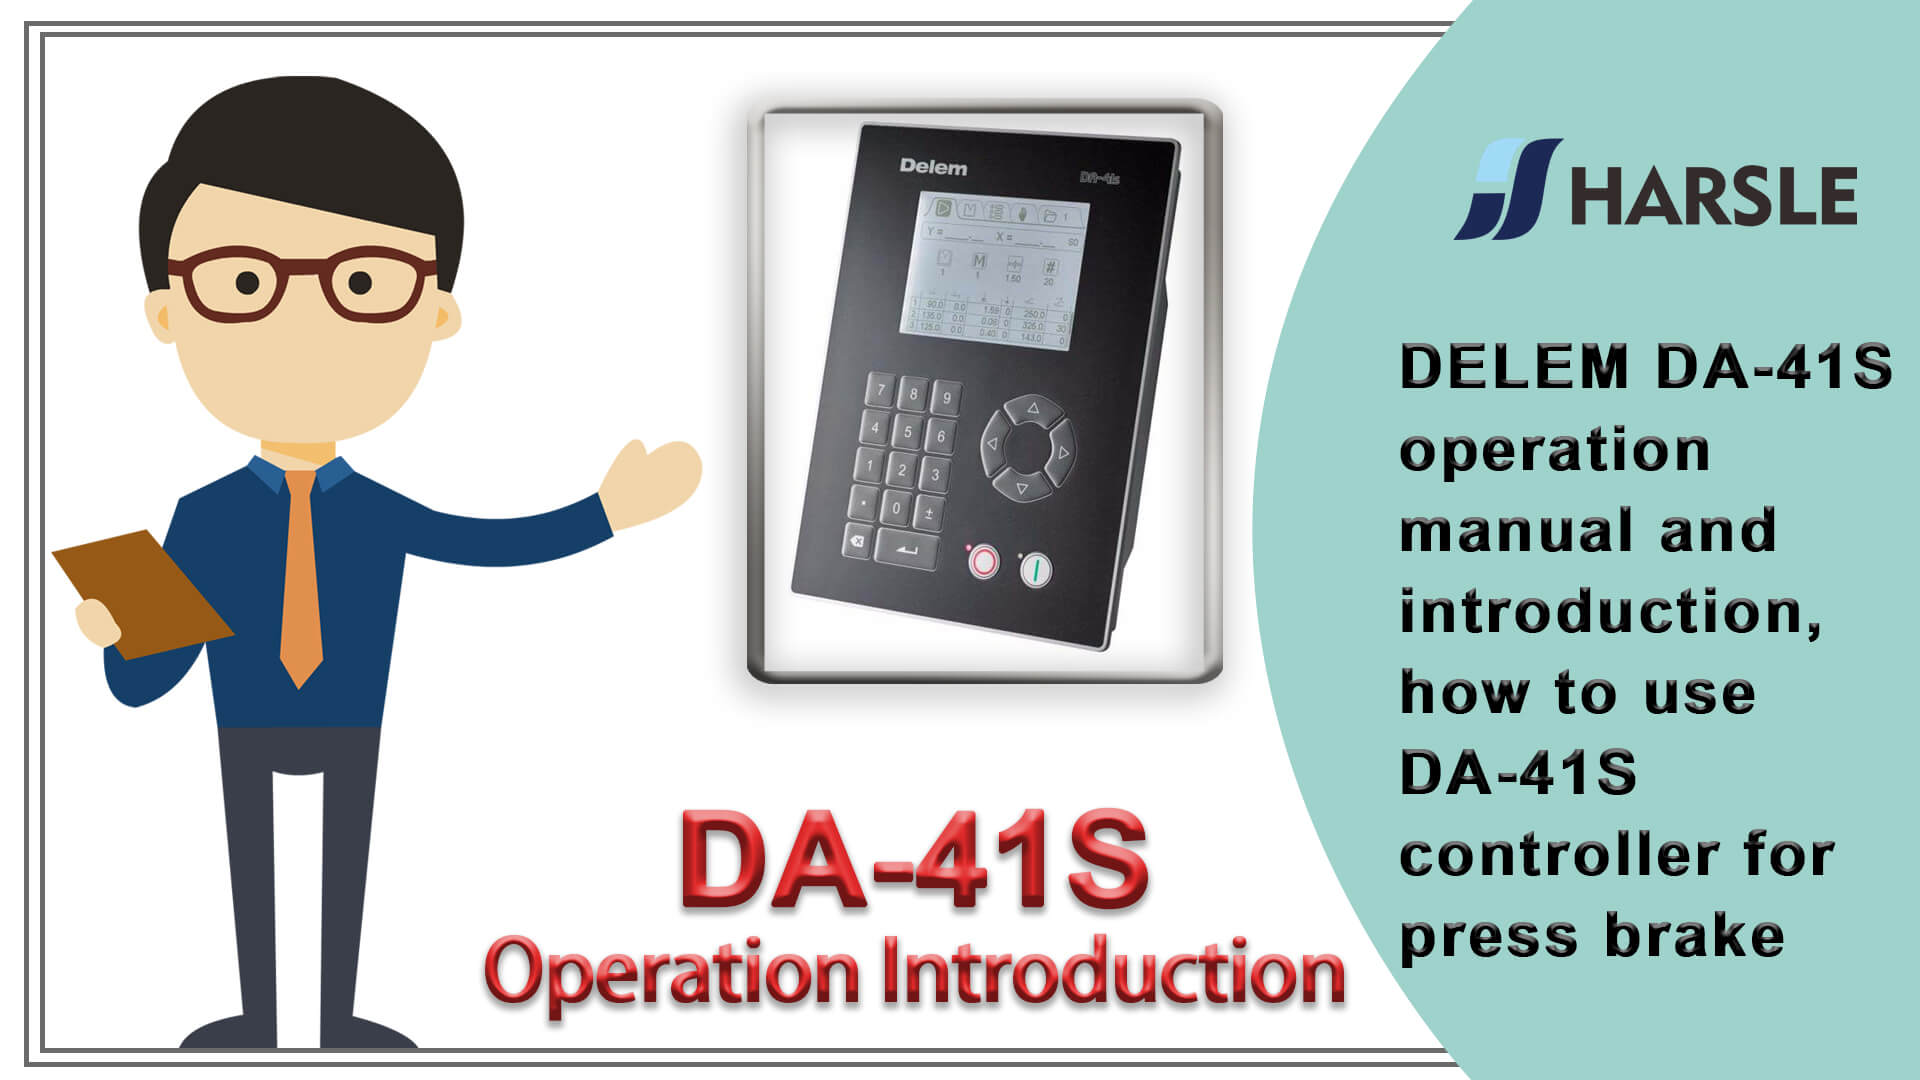 DELEM DA-41S operation manual and introduction, how to use DA-41S controller for press brake